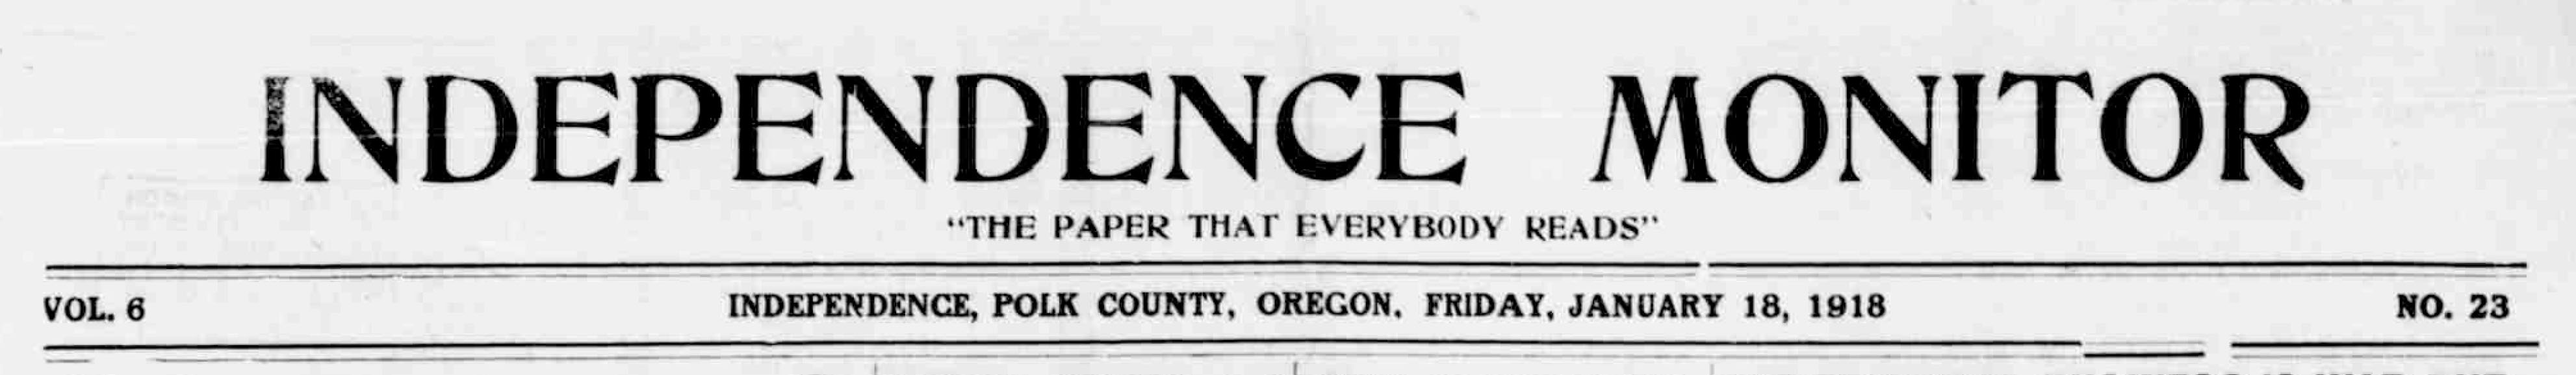 Independence monitor. (Independence, Or.) January 18, 1918. Image 1. http://oregonnews.uoregon.edu/lccn/2012260081/1918-01-18/ed-1/seq-1/